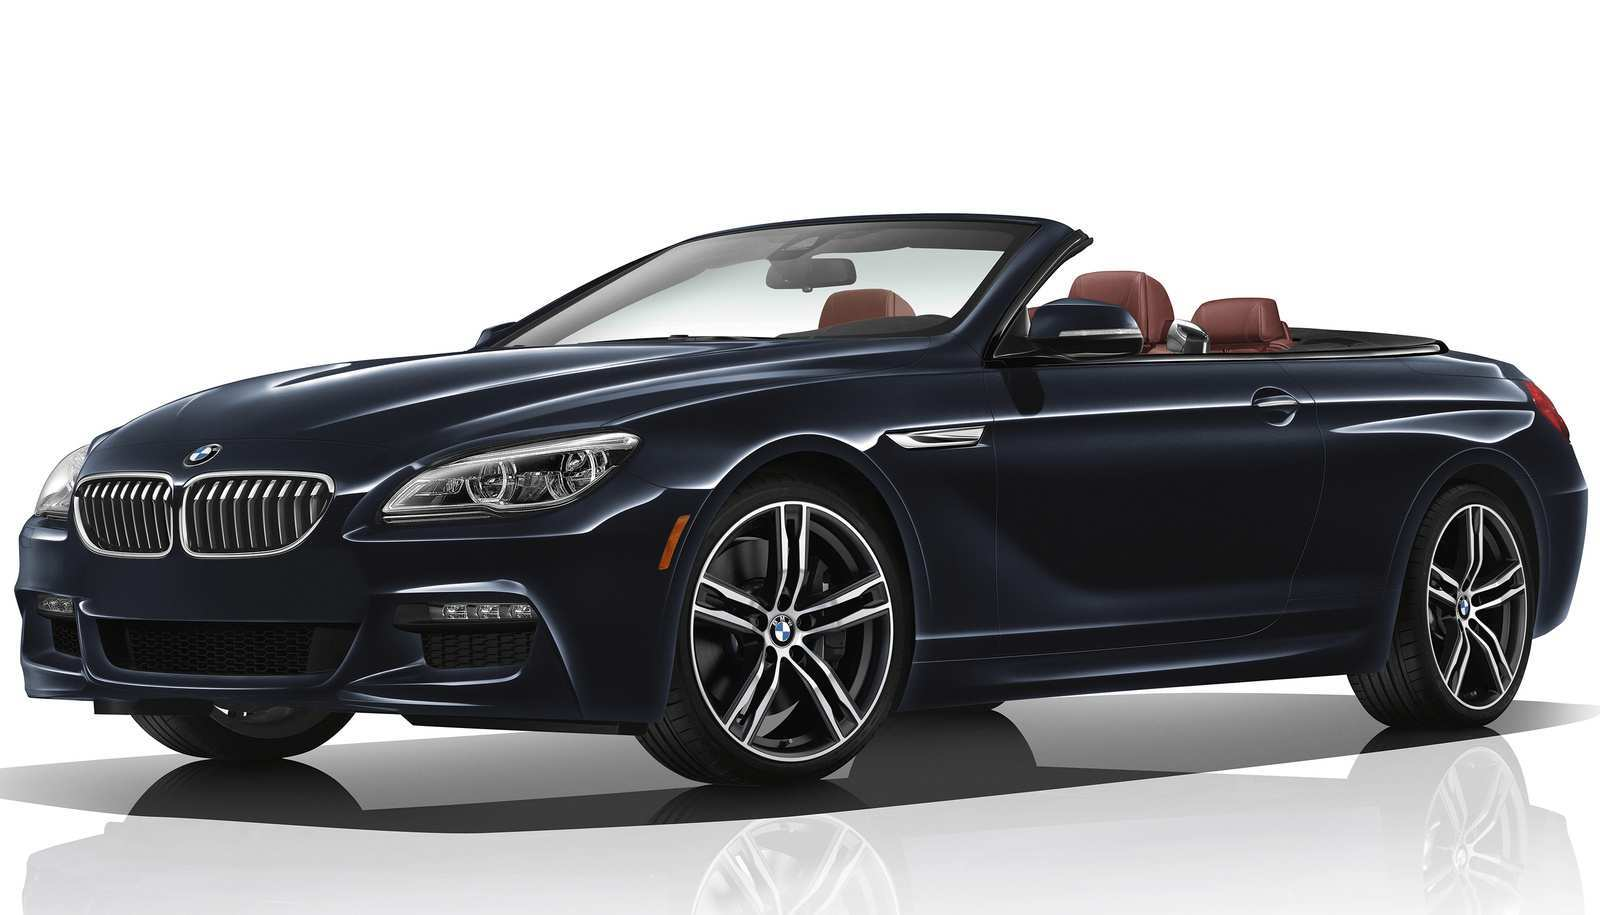 53 New 2020 Bmw 6 Series Convertible Exterior for 2020 Bmw 6 Series Convertible